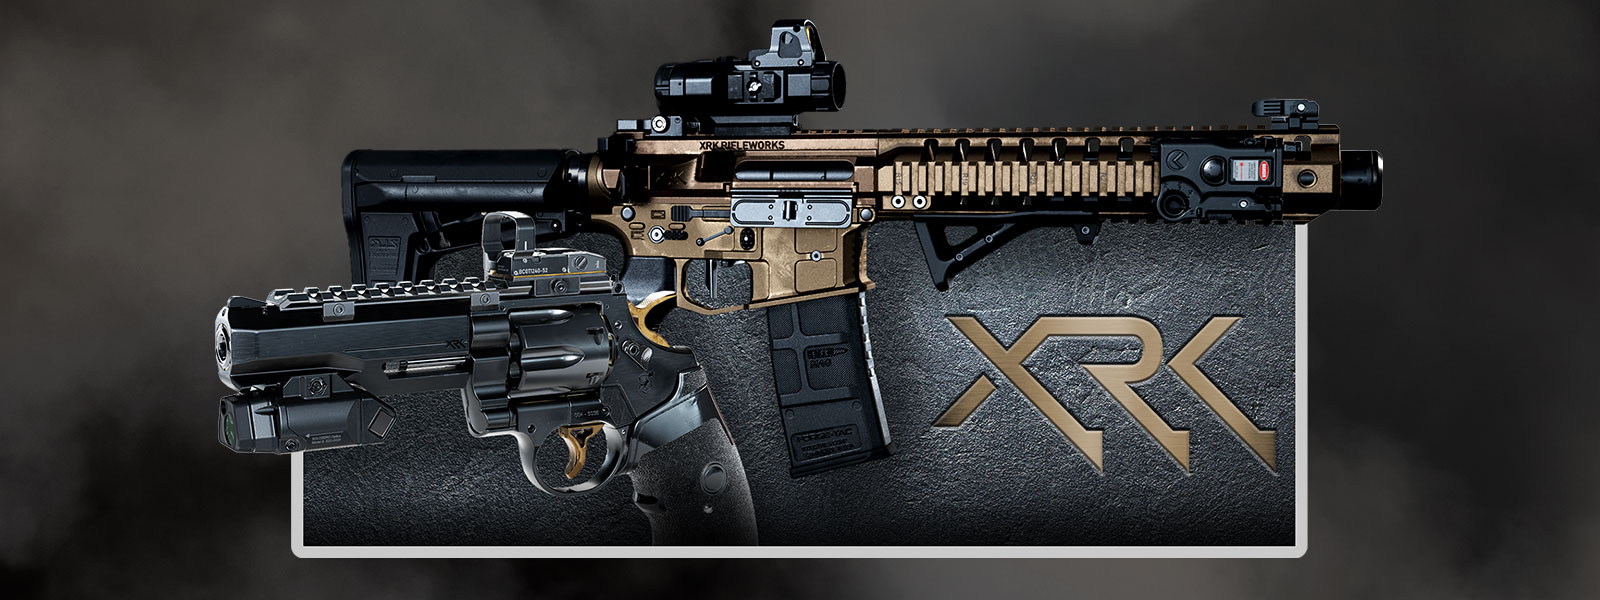 Sideview of two guns on top of a textured background and XRK logo